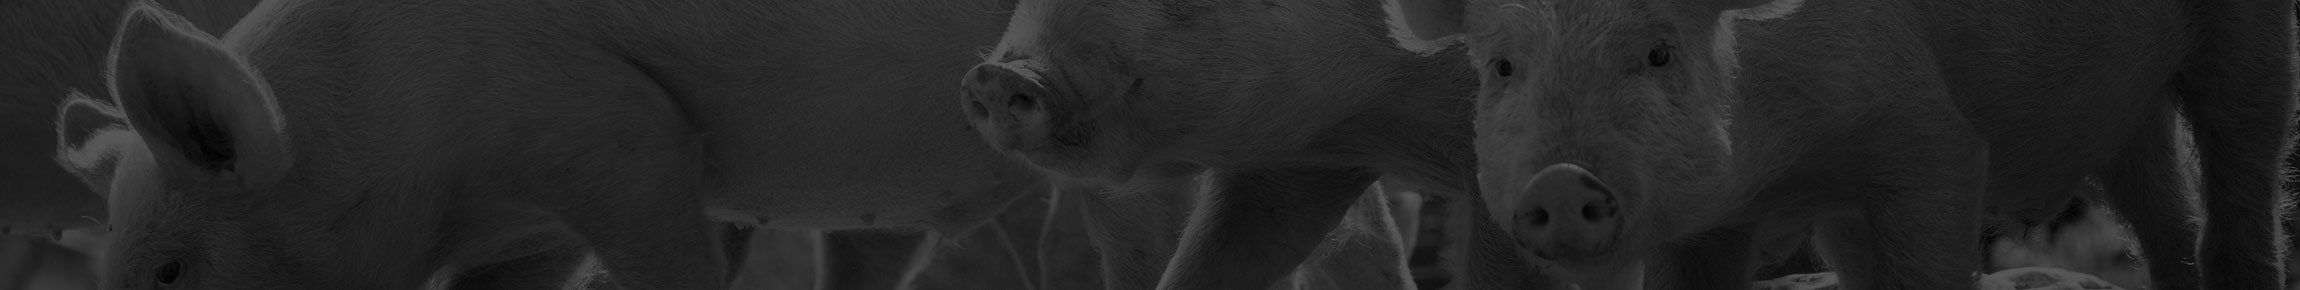 Pig Feed | Pig Feed Supplements | Target Feeds | Targetfeeds